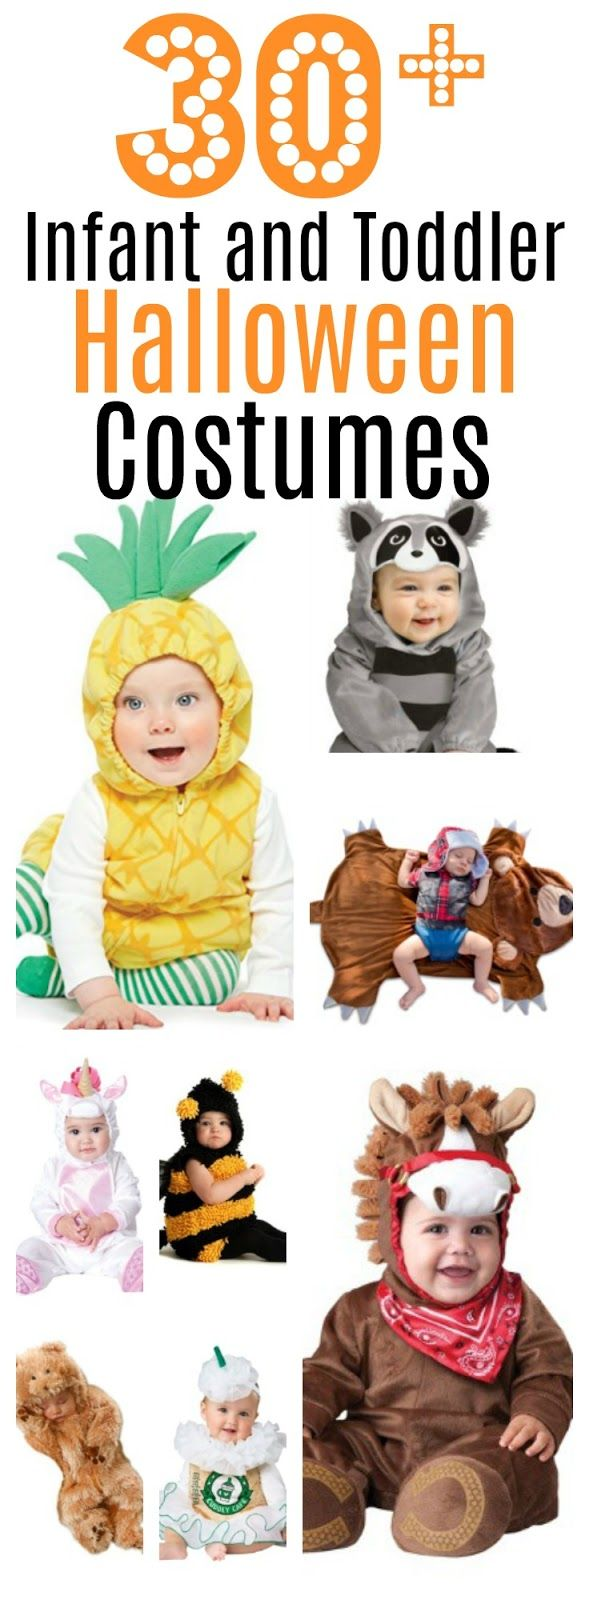 Mega-list of over 30 Halloween costumes for boys and girls!  #halloween #costumes